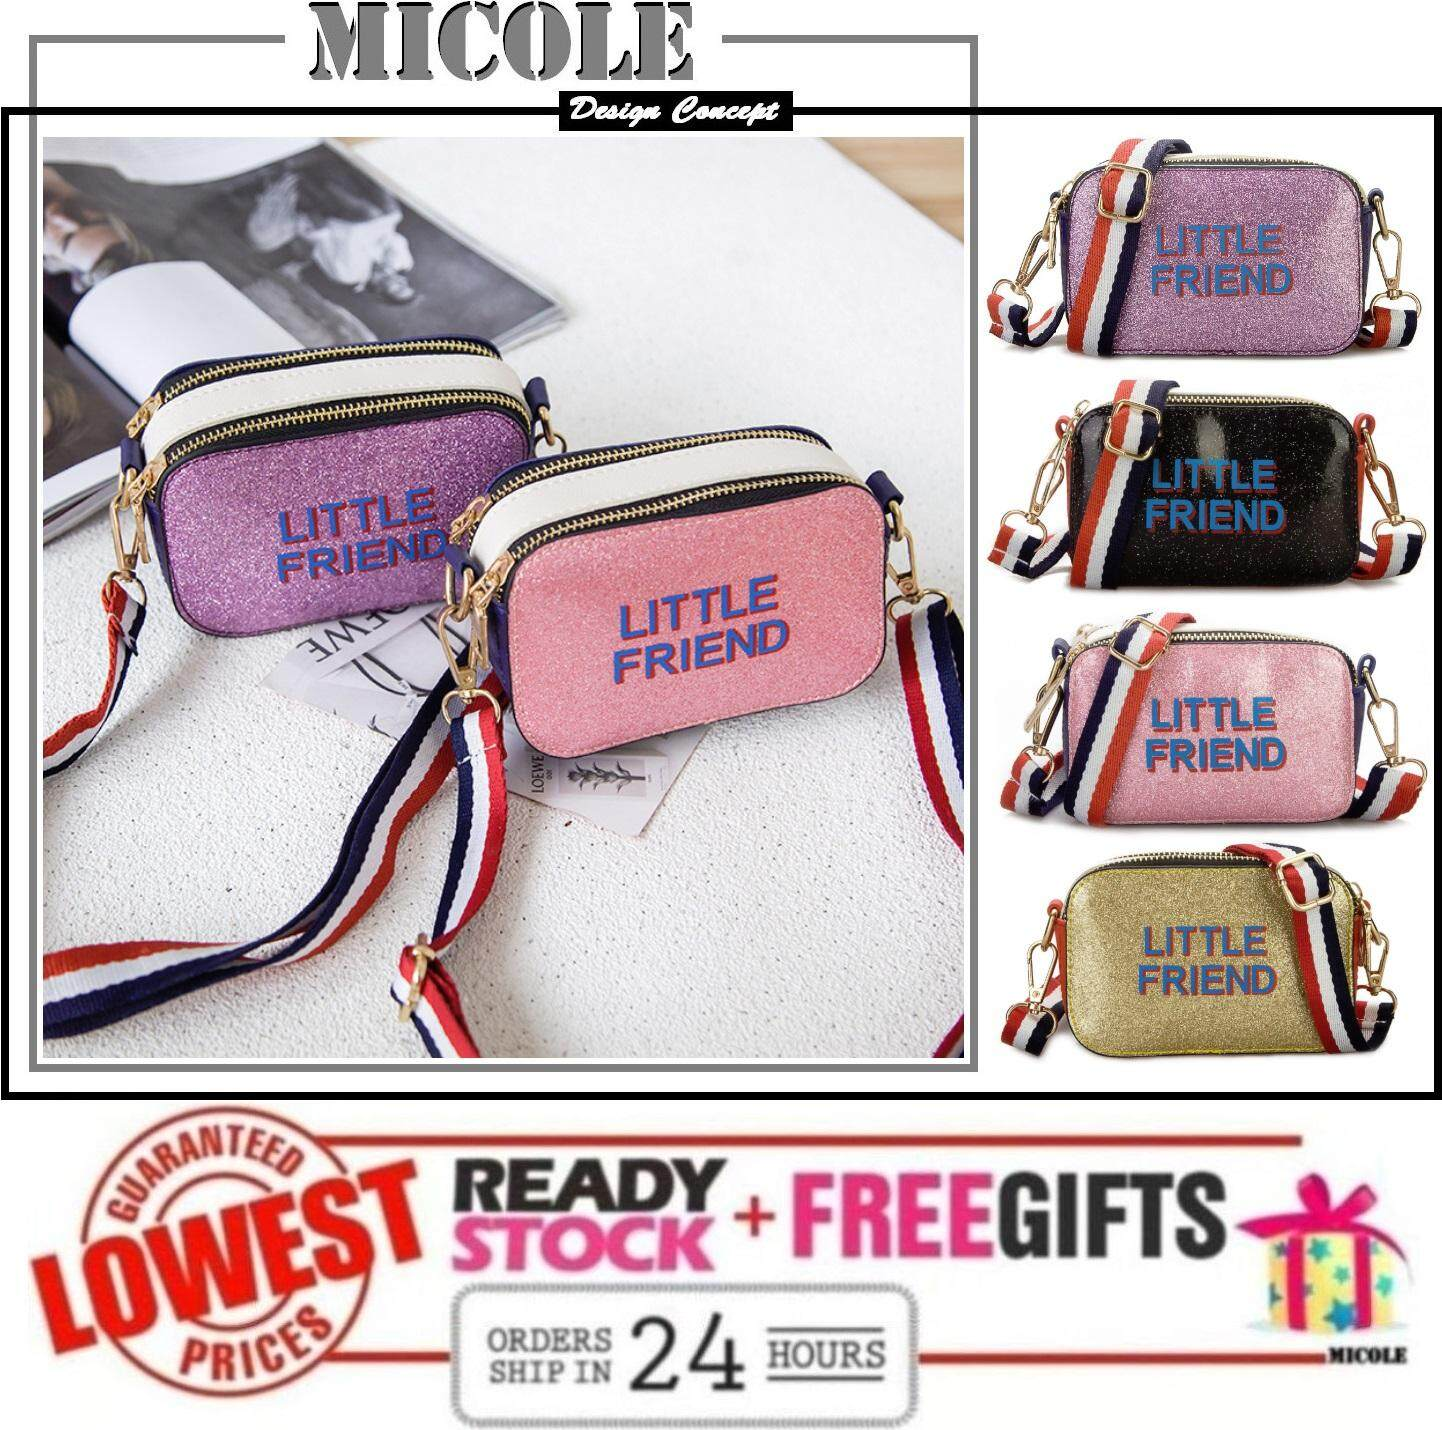 Micole Kids Cutie Mini Shoulder Bag Handbag Sling Bag Sb2090 By Micoleconcept.